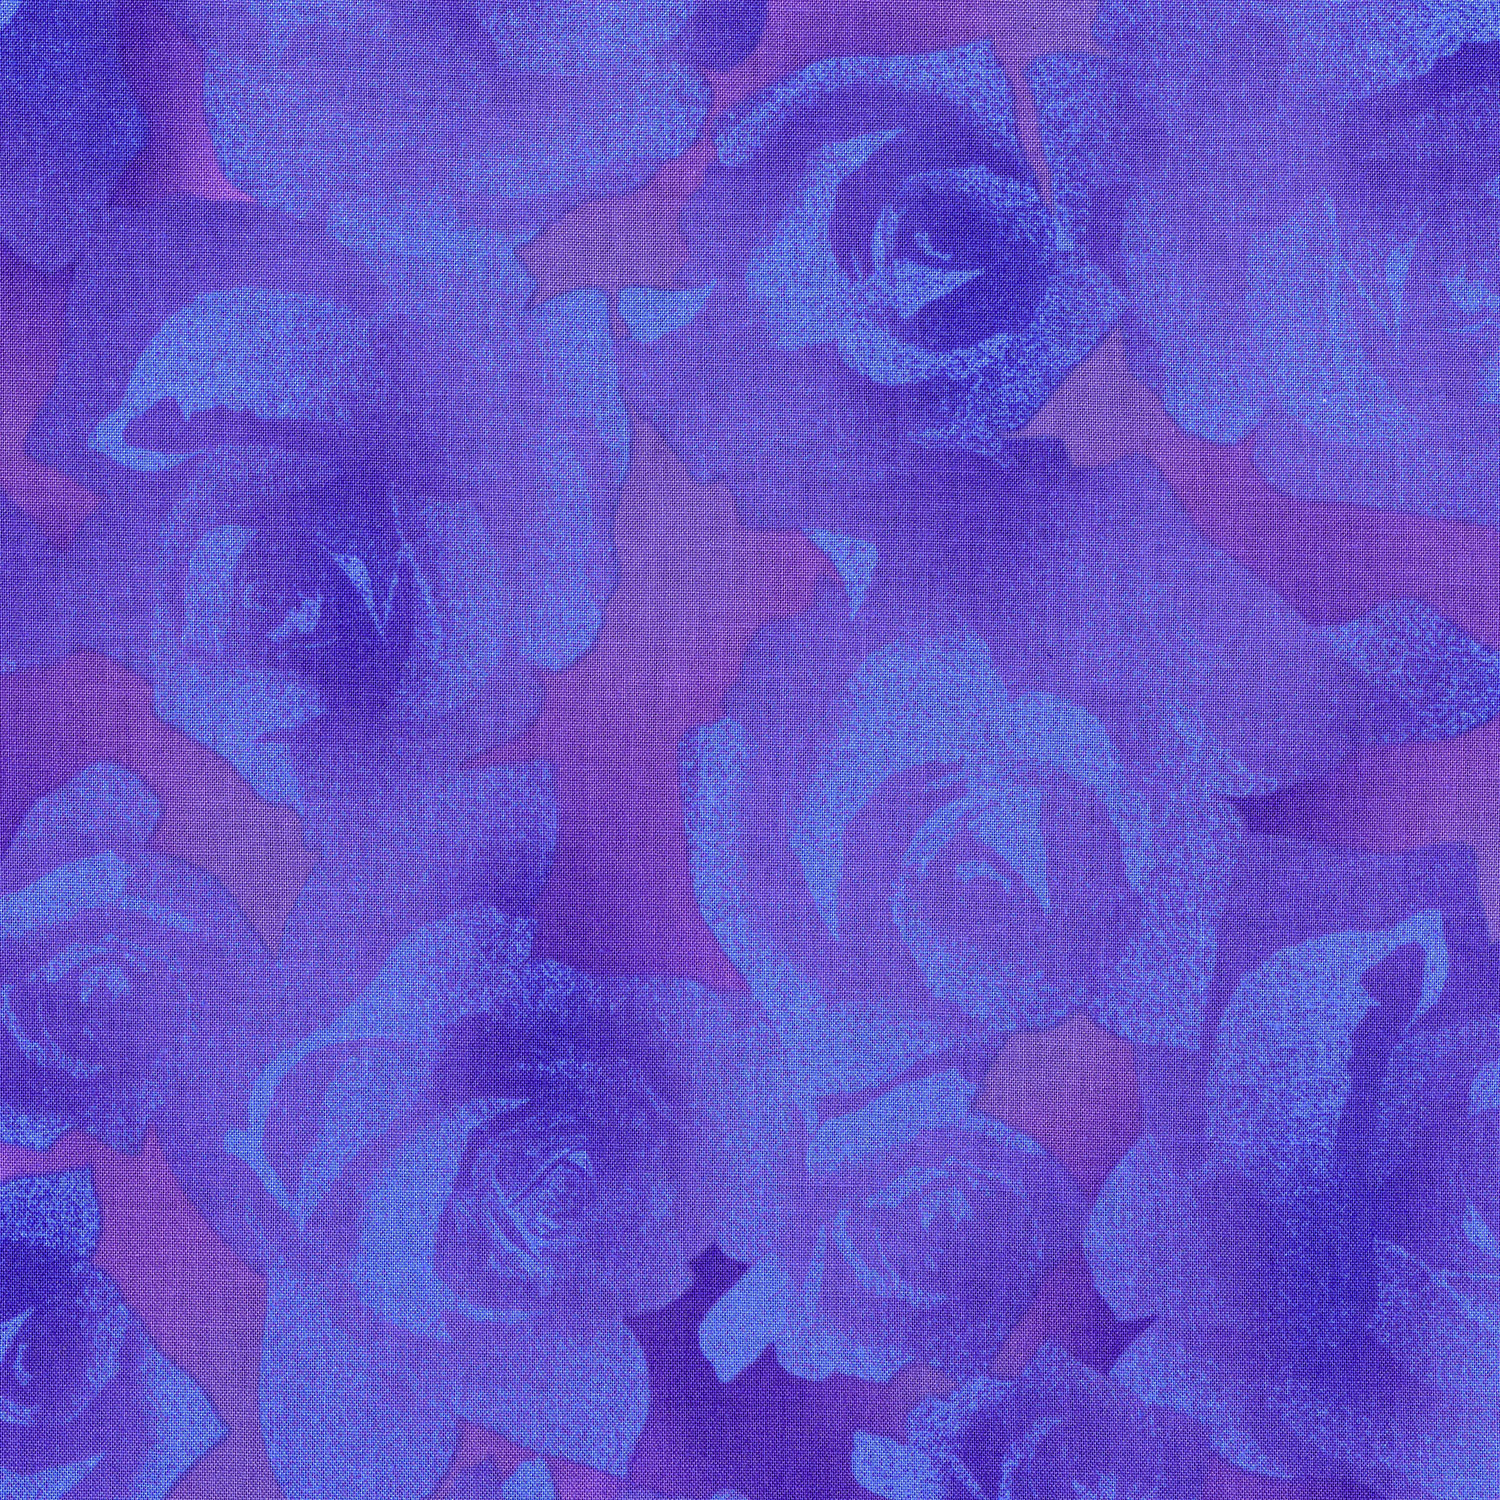 3017-004 TEXTURED ROSE-MAUVE